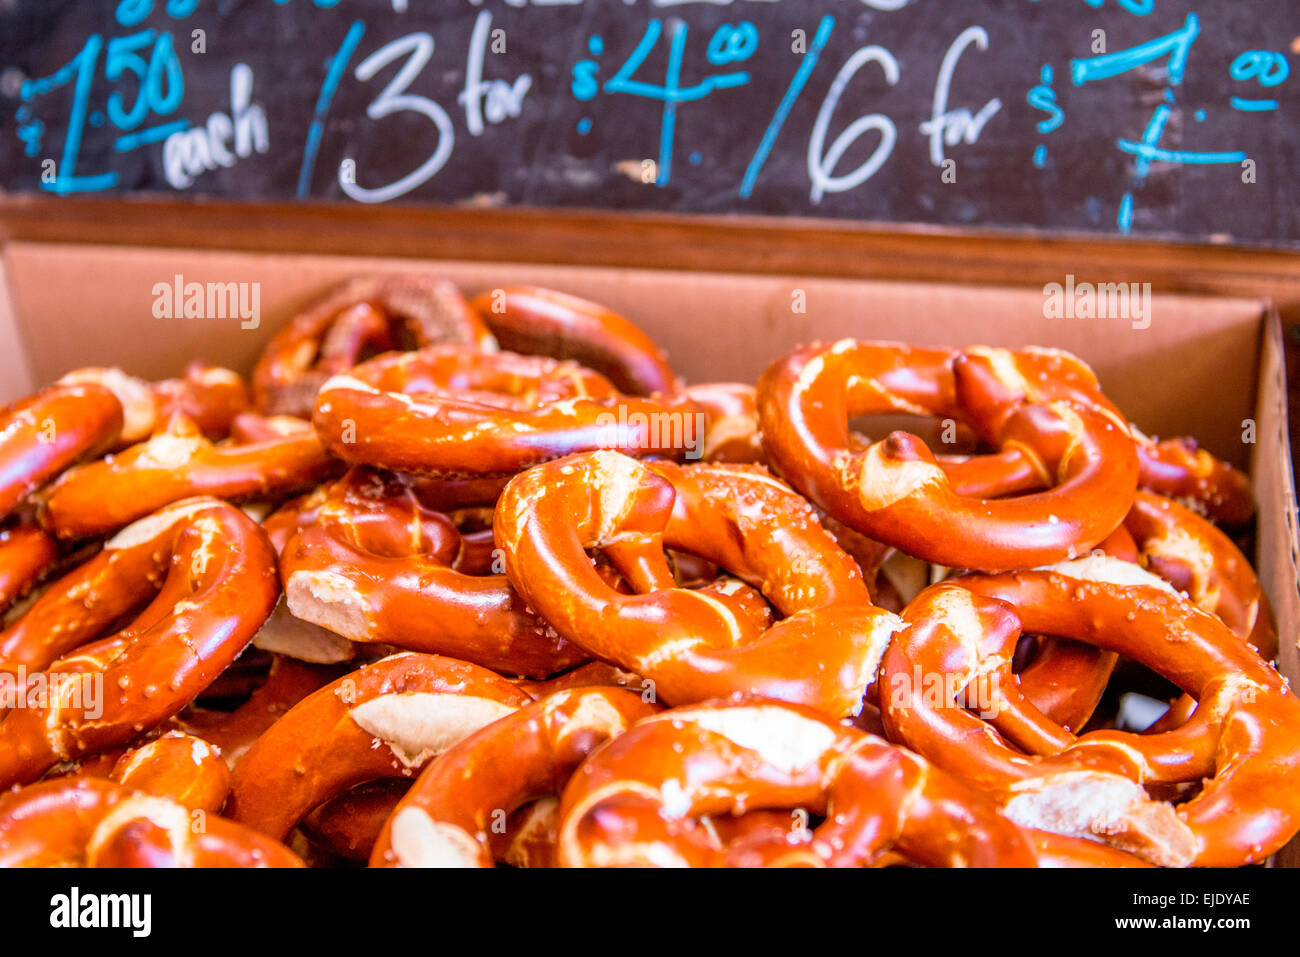 Tight shot of Authentic German Pretzels. - Stock Image